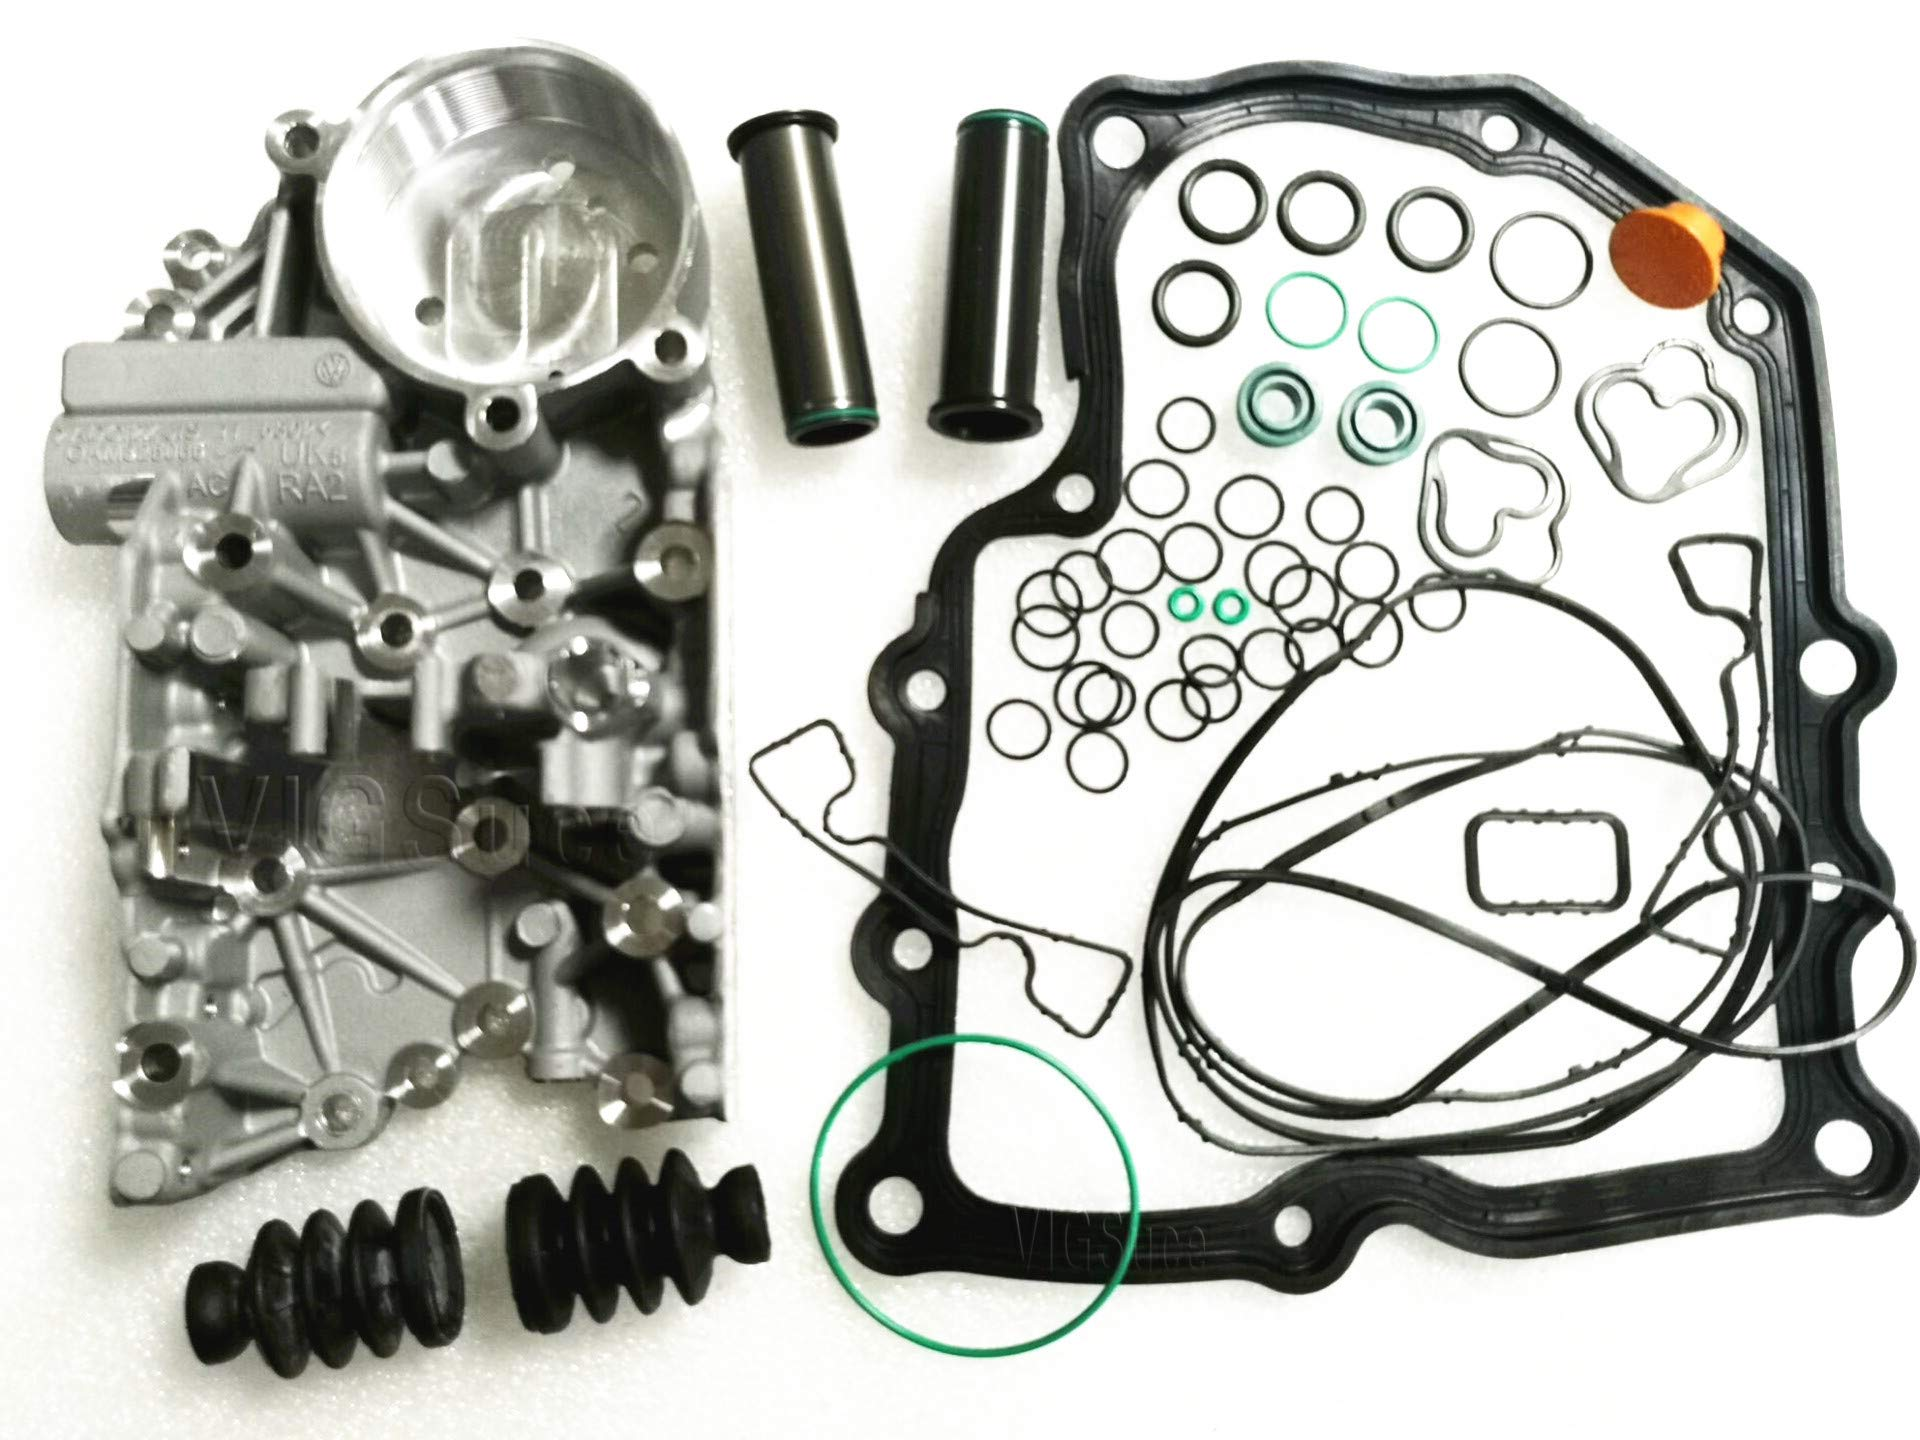 JET 80622 Auto and Manual Transmission Module